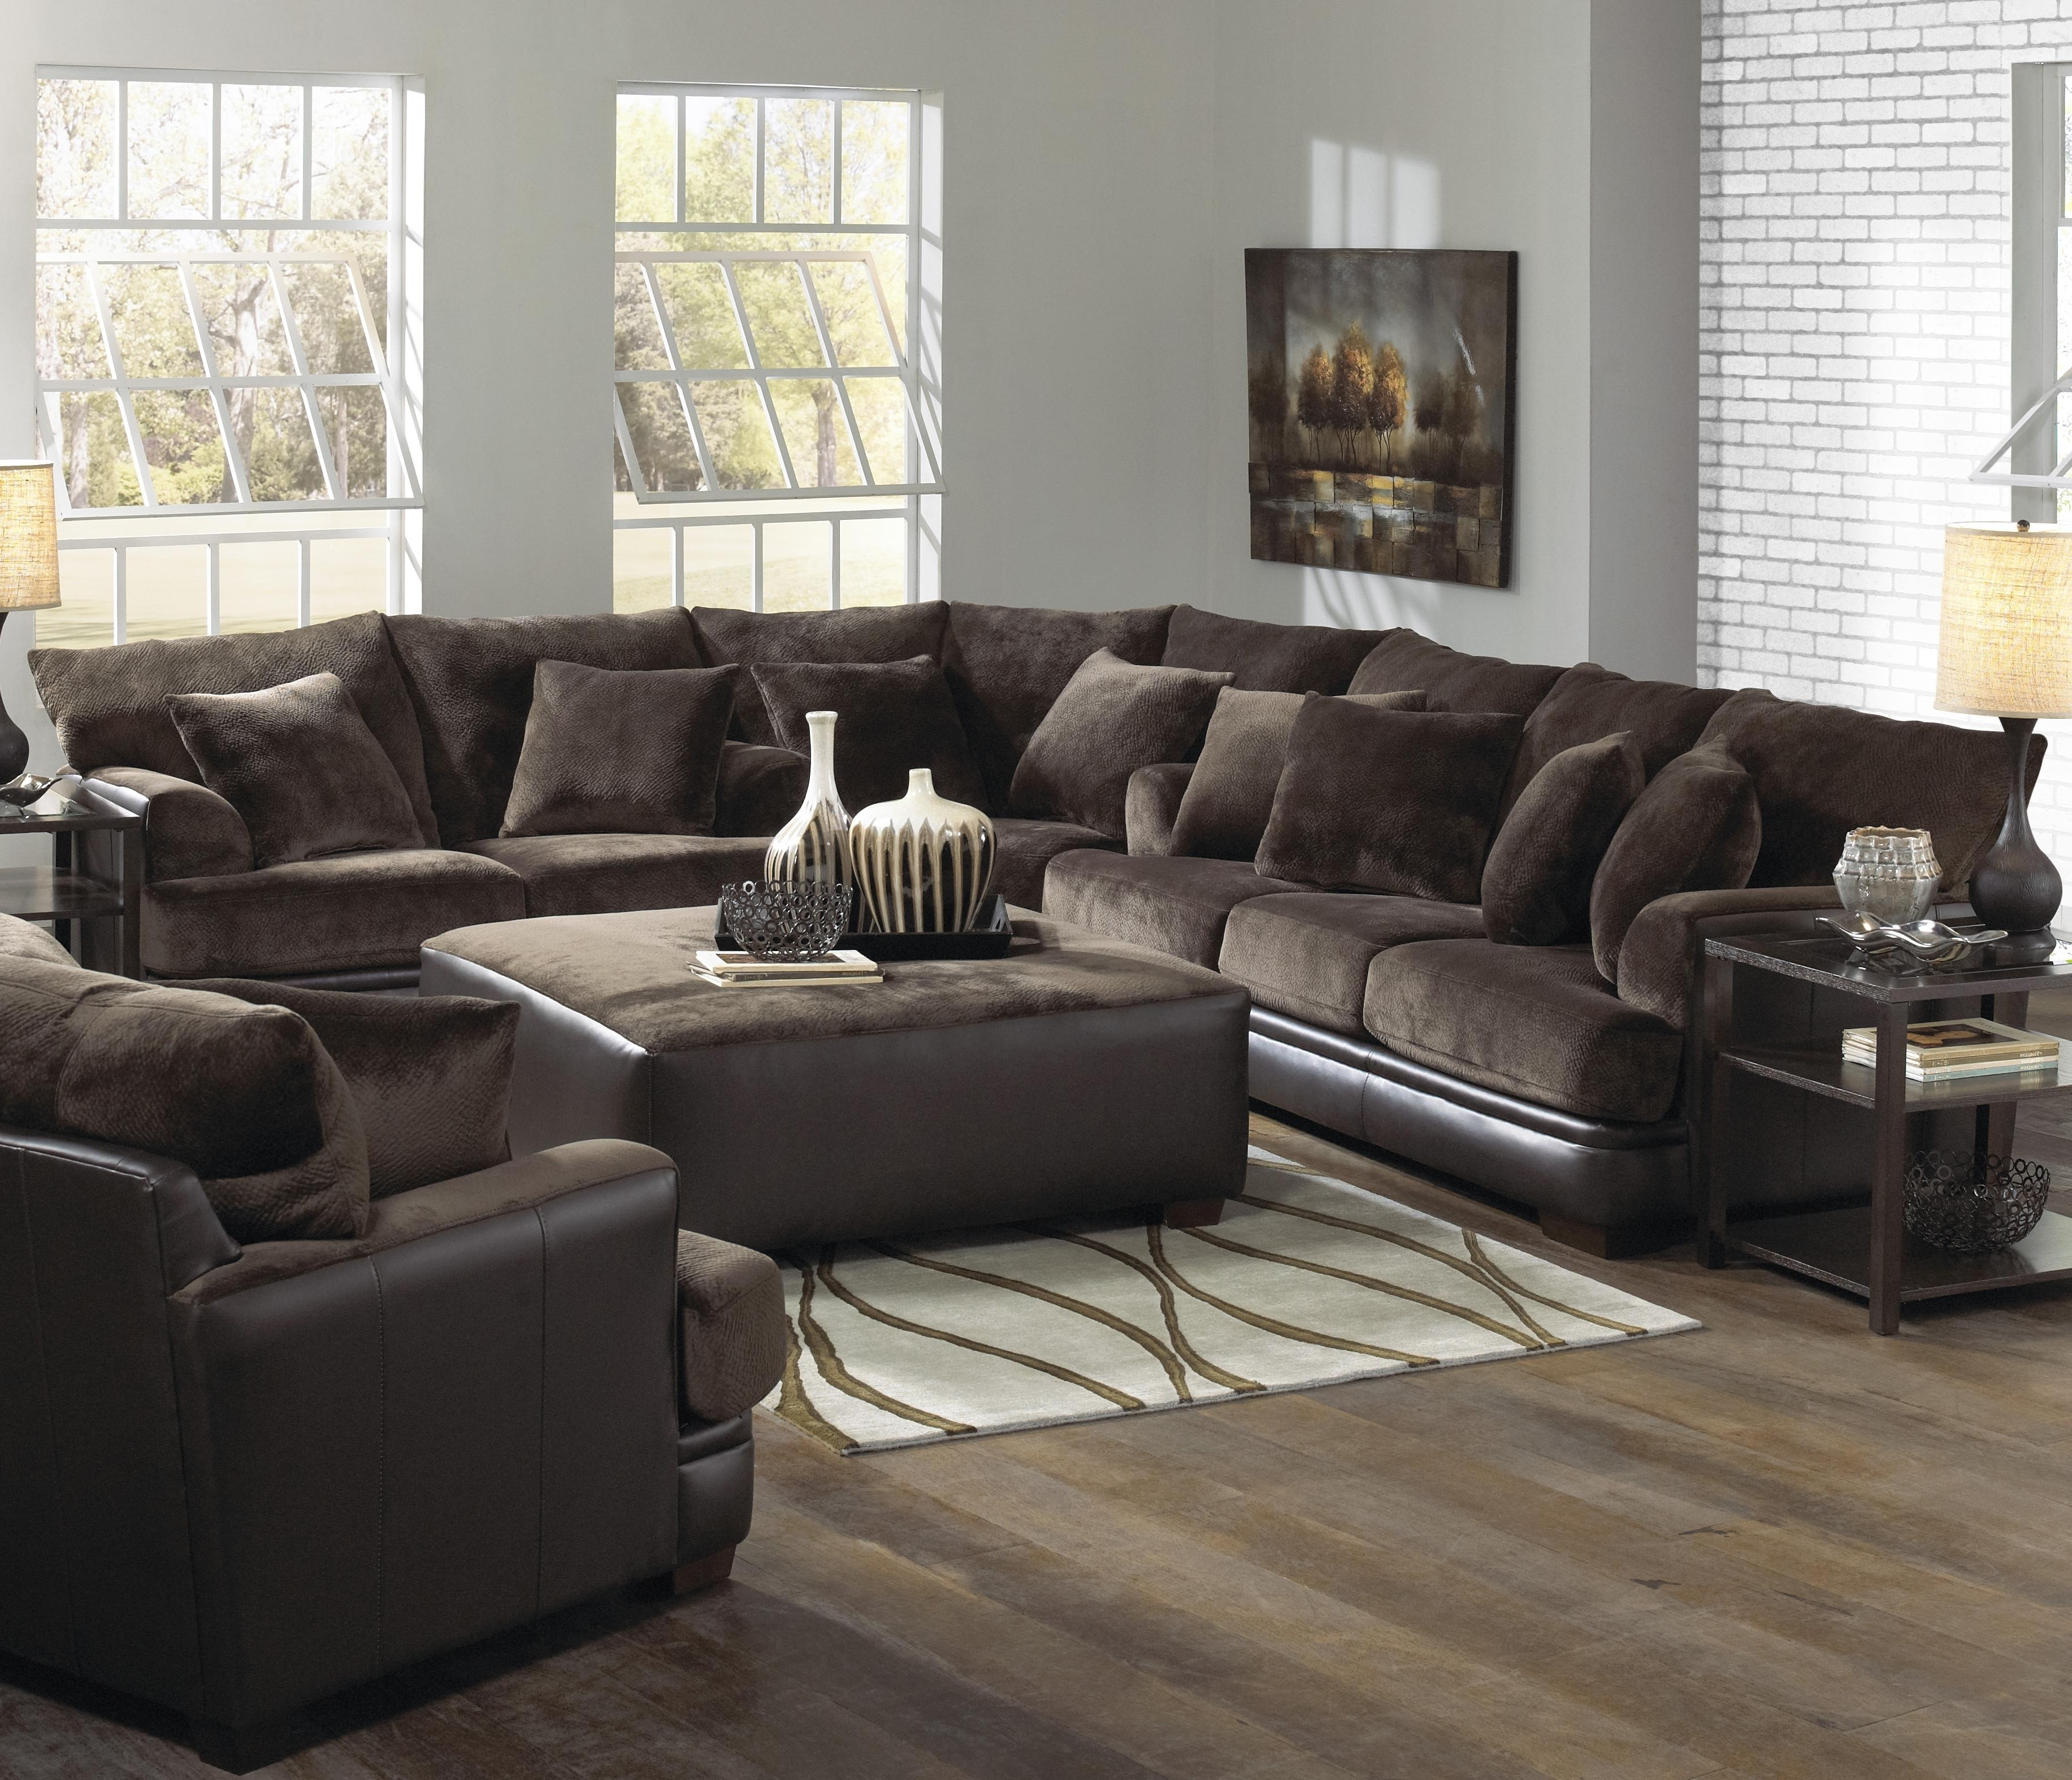 Widely Used Extra Large Sectional Leather Couches • Leather Sofa Pertaining To Extra Large Sectional Sofas (View 7 of 20)